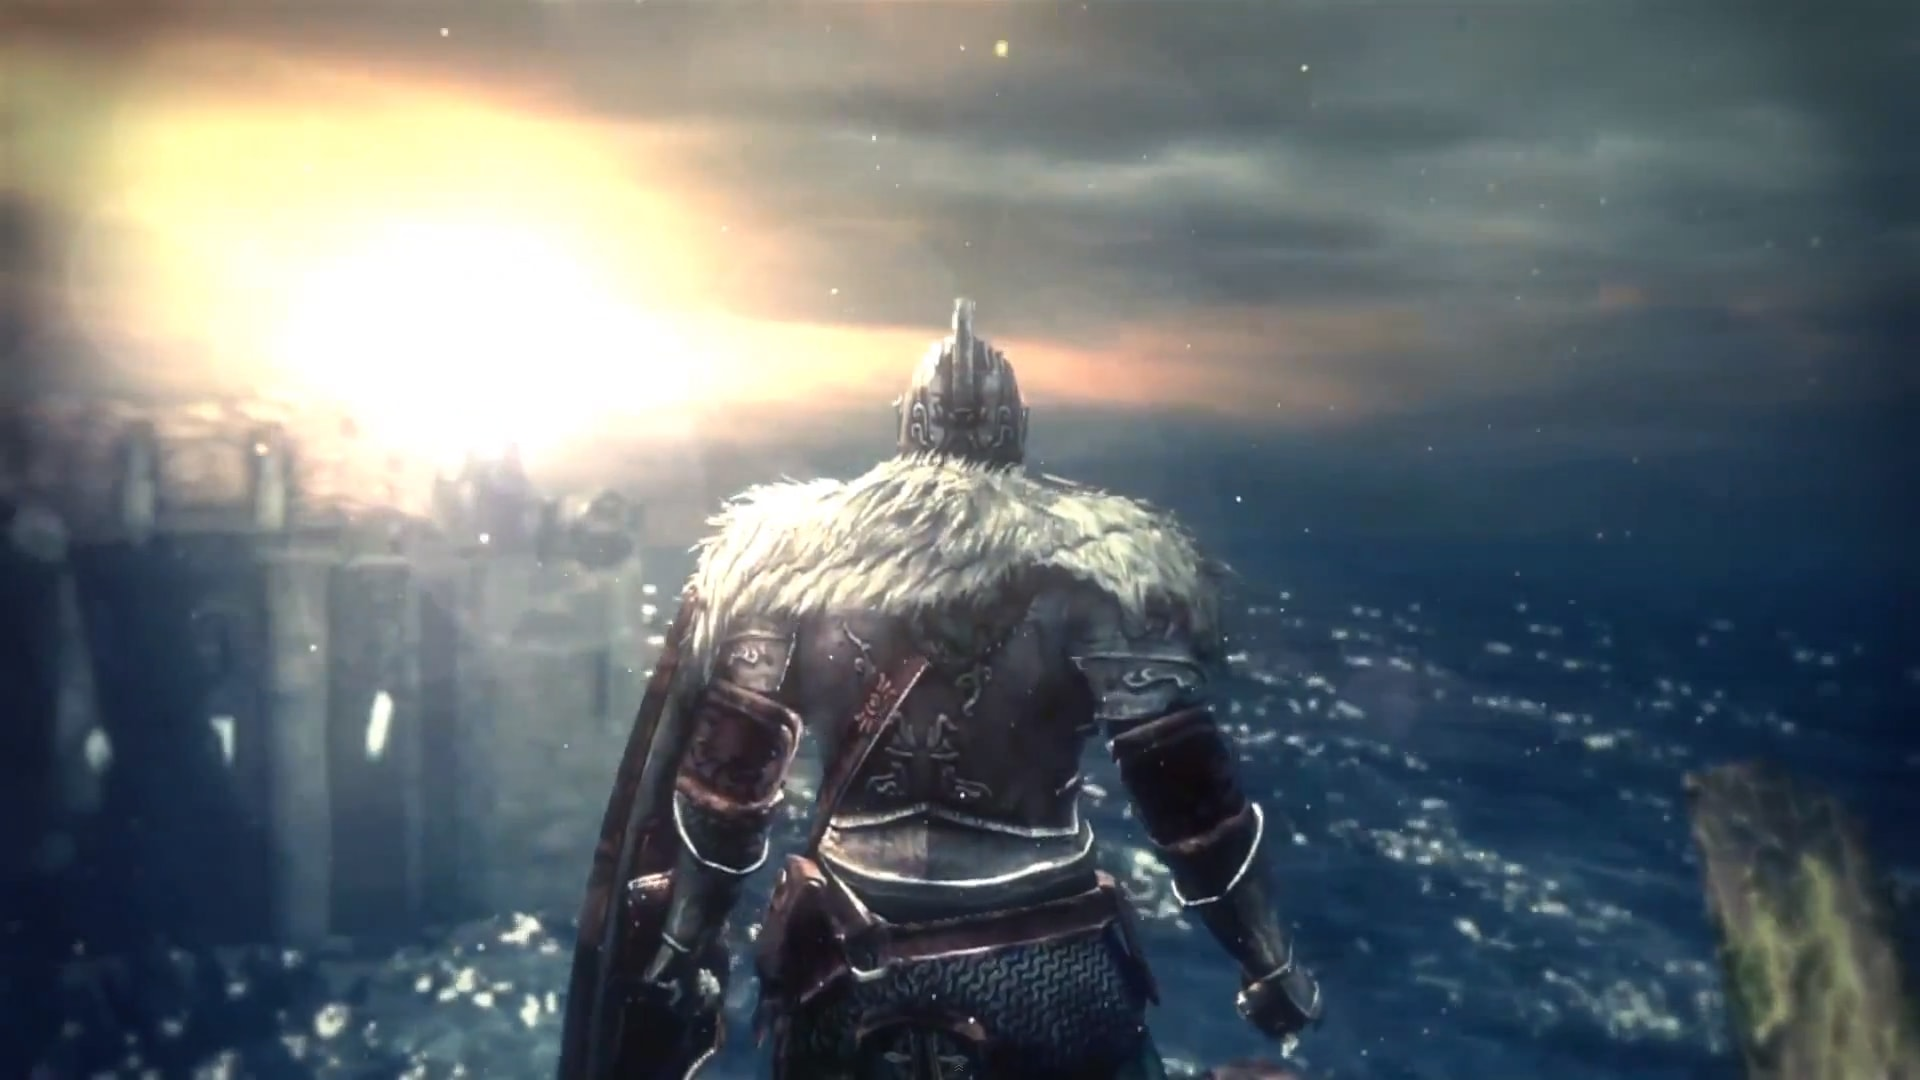 Dark Souls 2 widescreen for desktop